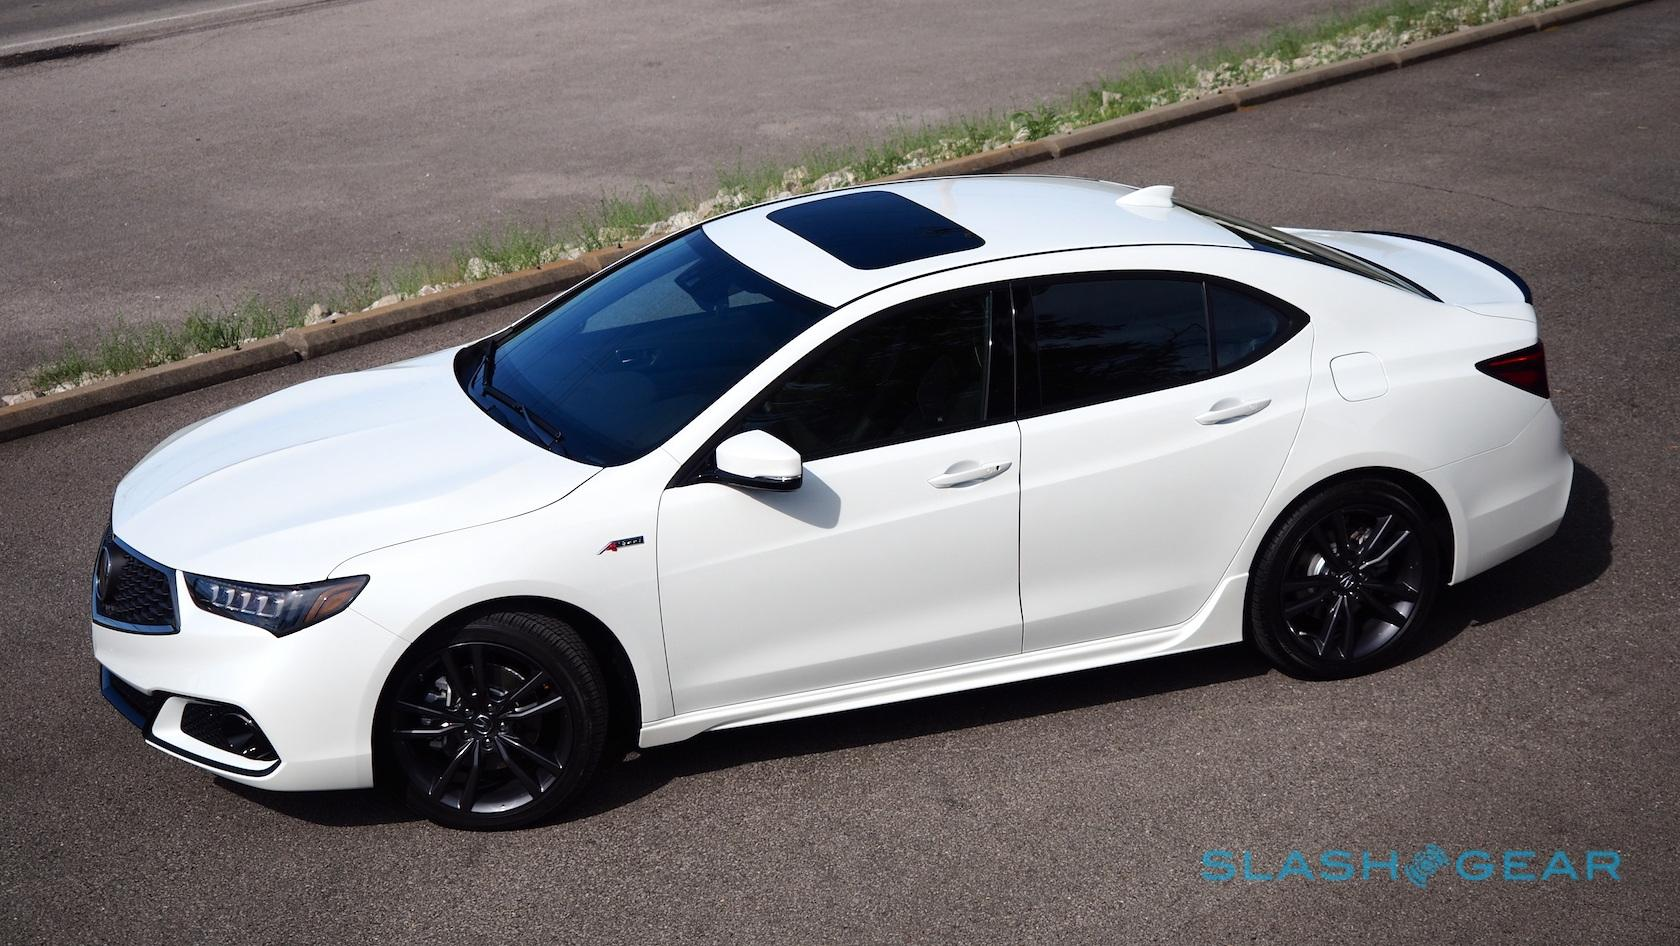 hight resolution of acurawatch the company s suite of active safety tech is also standard across the 2018 tlx range